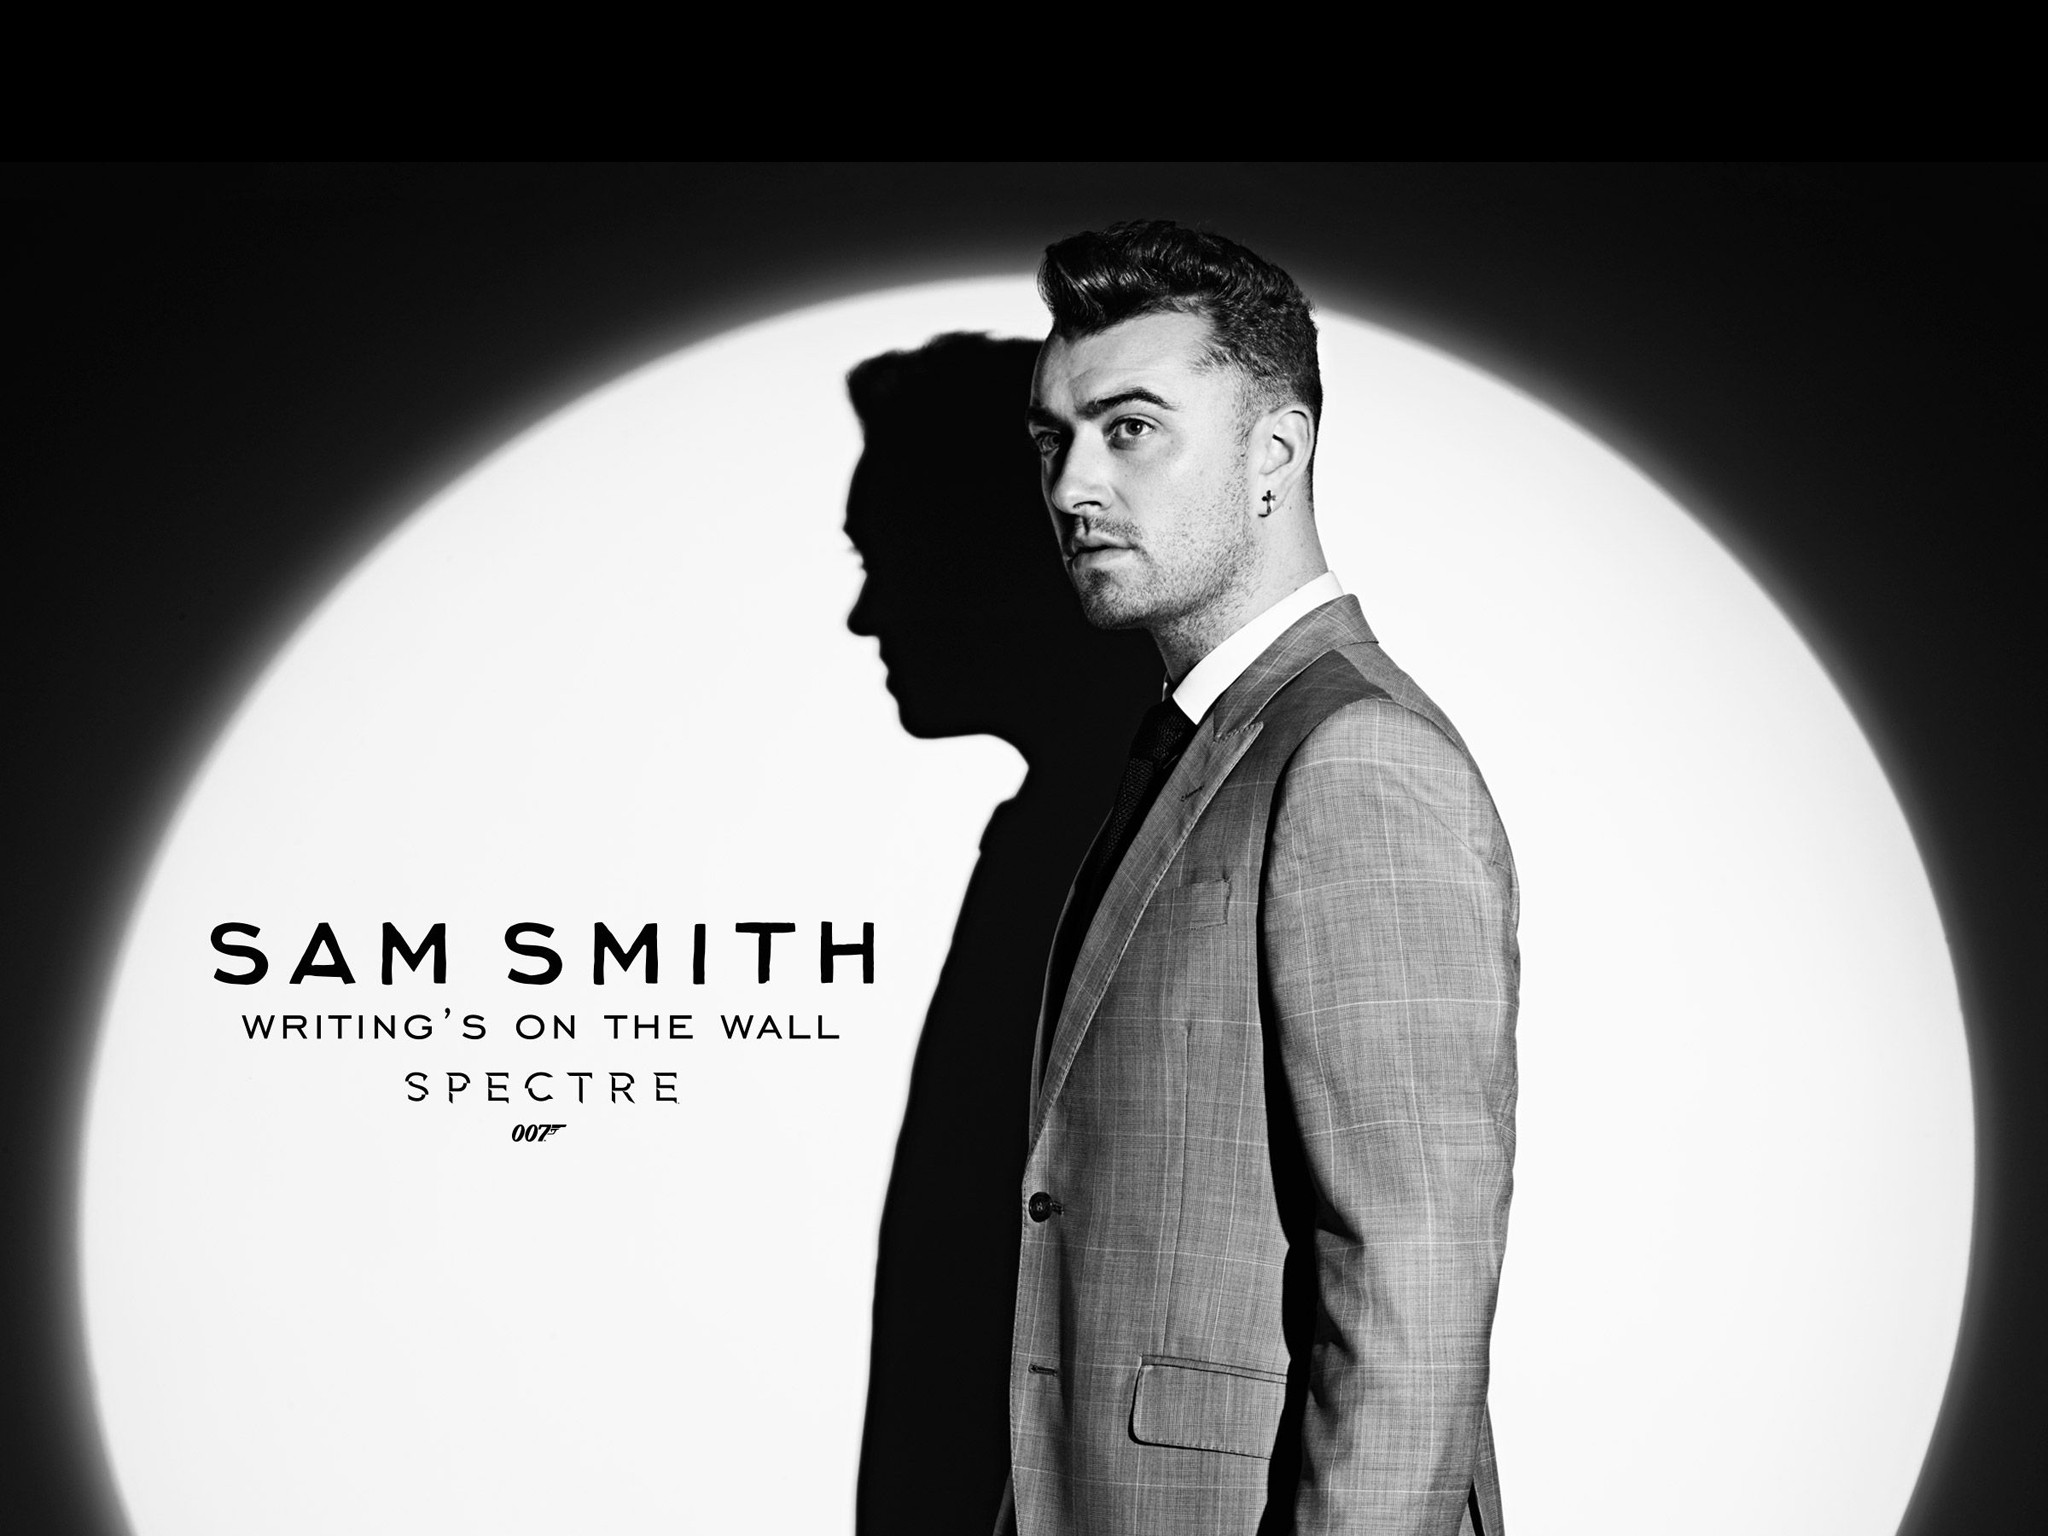 Sam Smith's James Bond theme 'Writing's on the Wall' is here